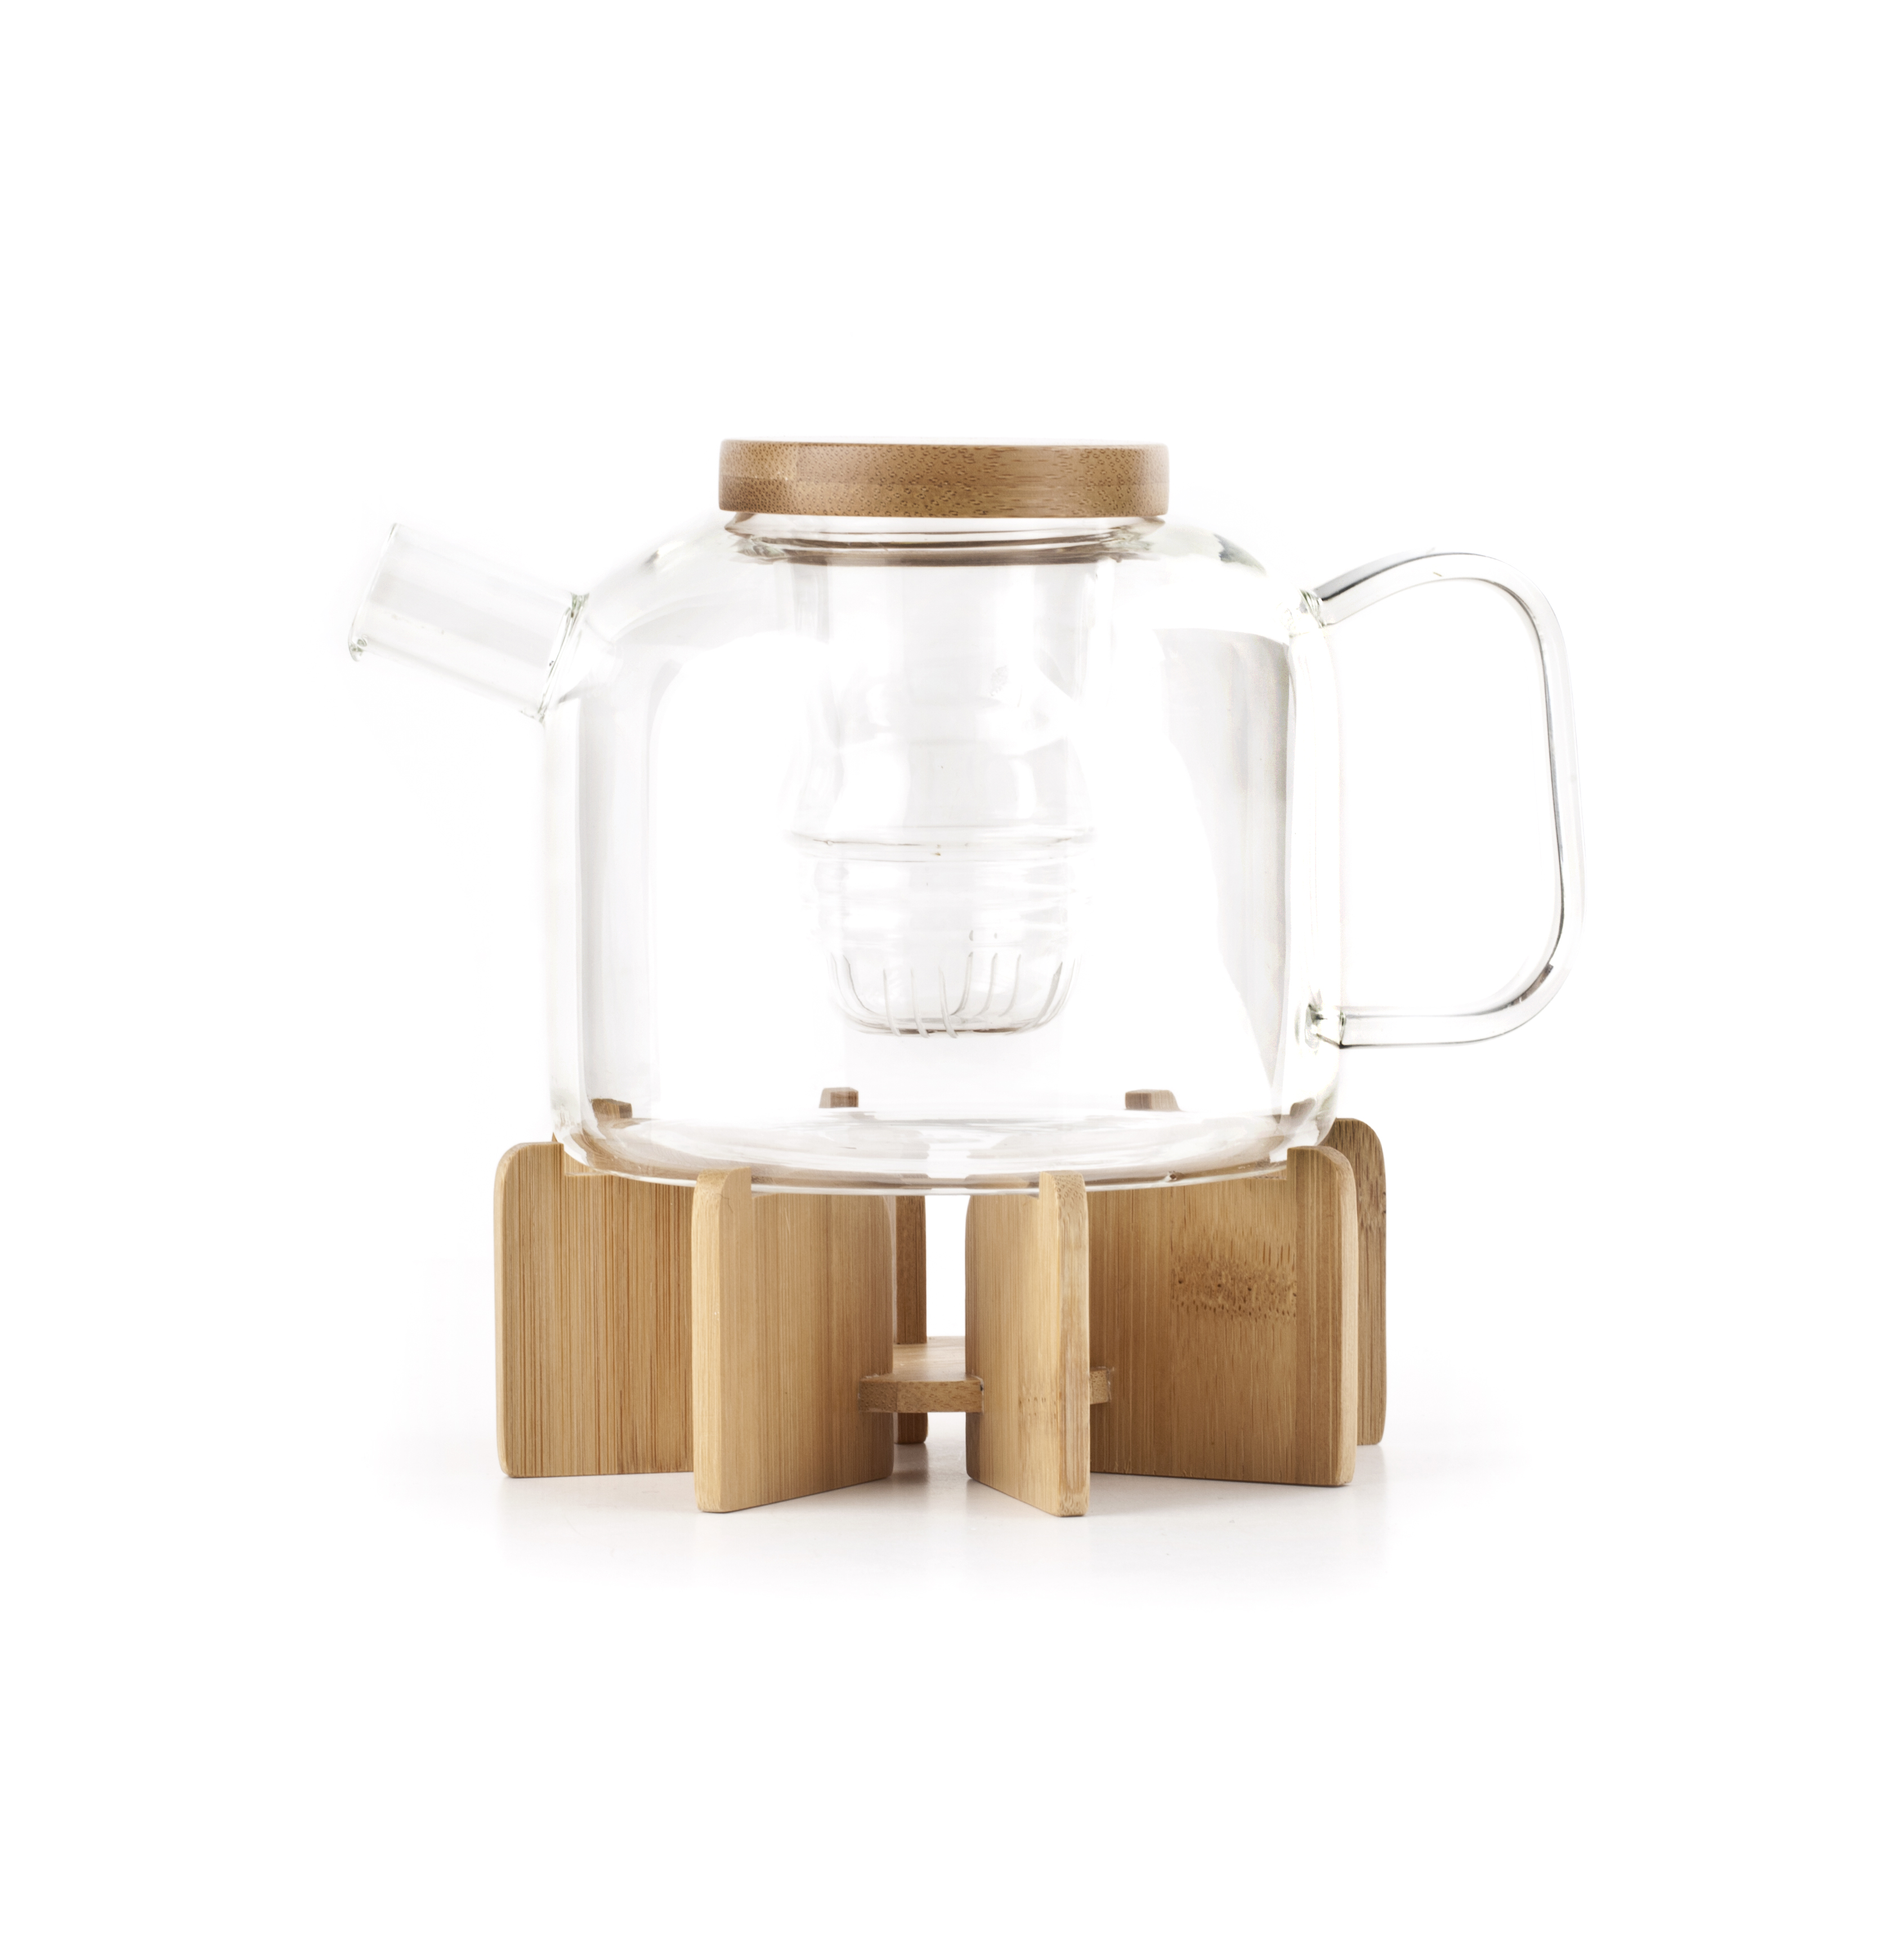 image of Kikkerland and Cost Plus World Market brand teapots with bamboo stands